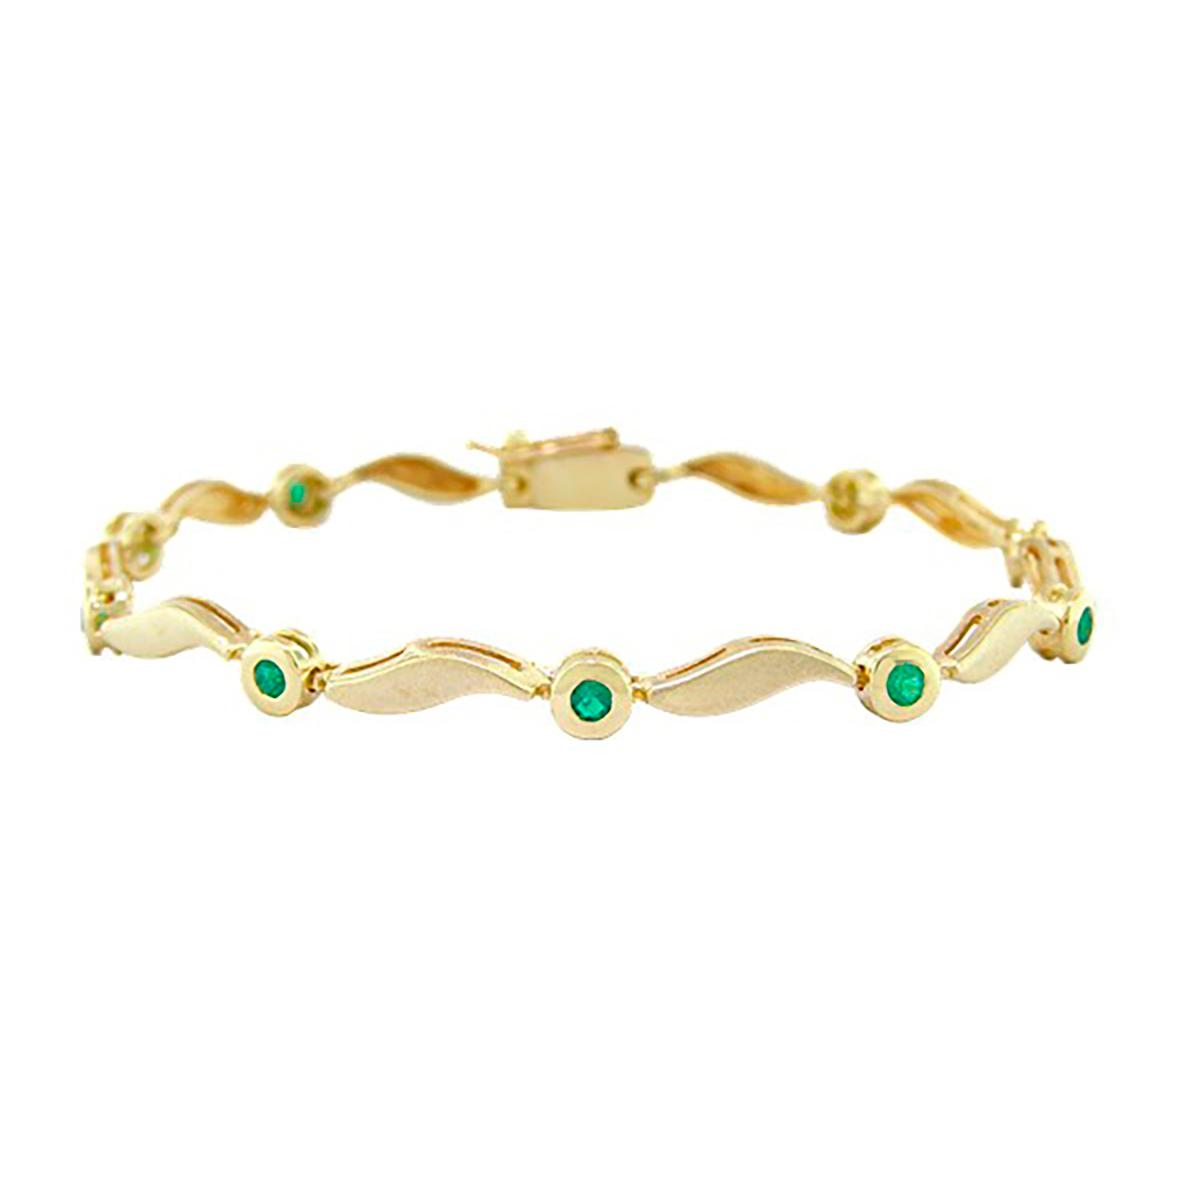 dainty-emerald-bracelet-in-18k-yellow-gold-with-round-emeralds-in-bezel-setting